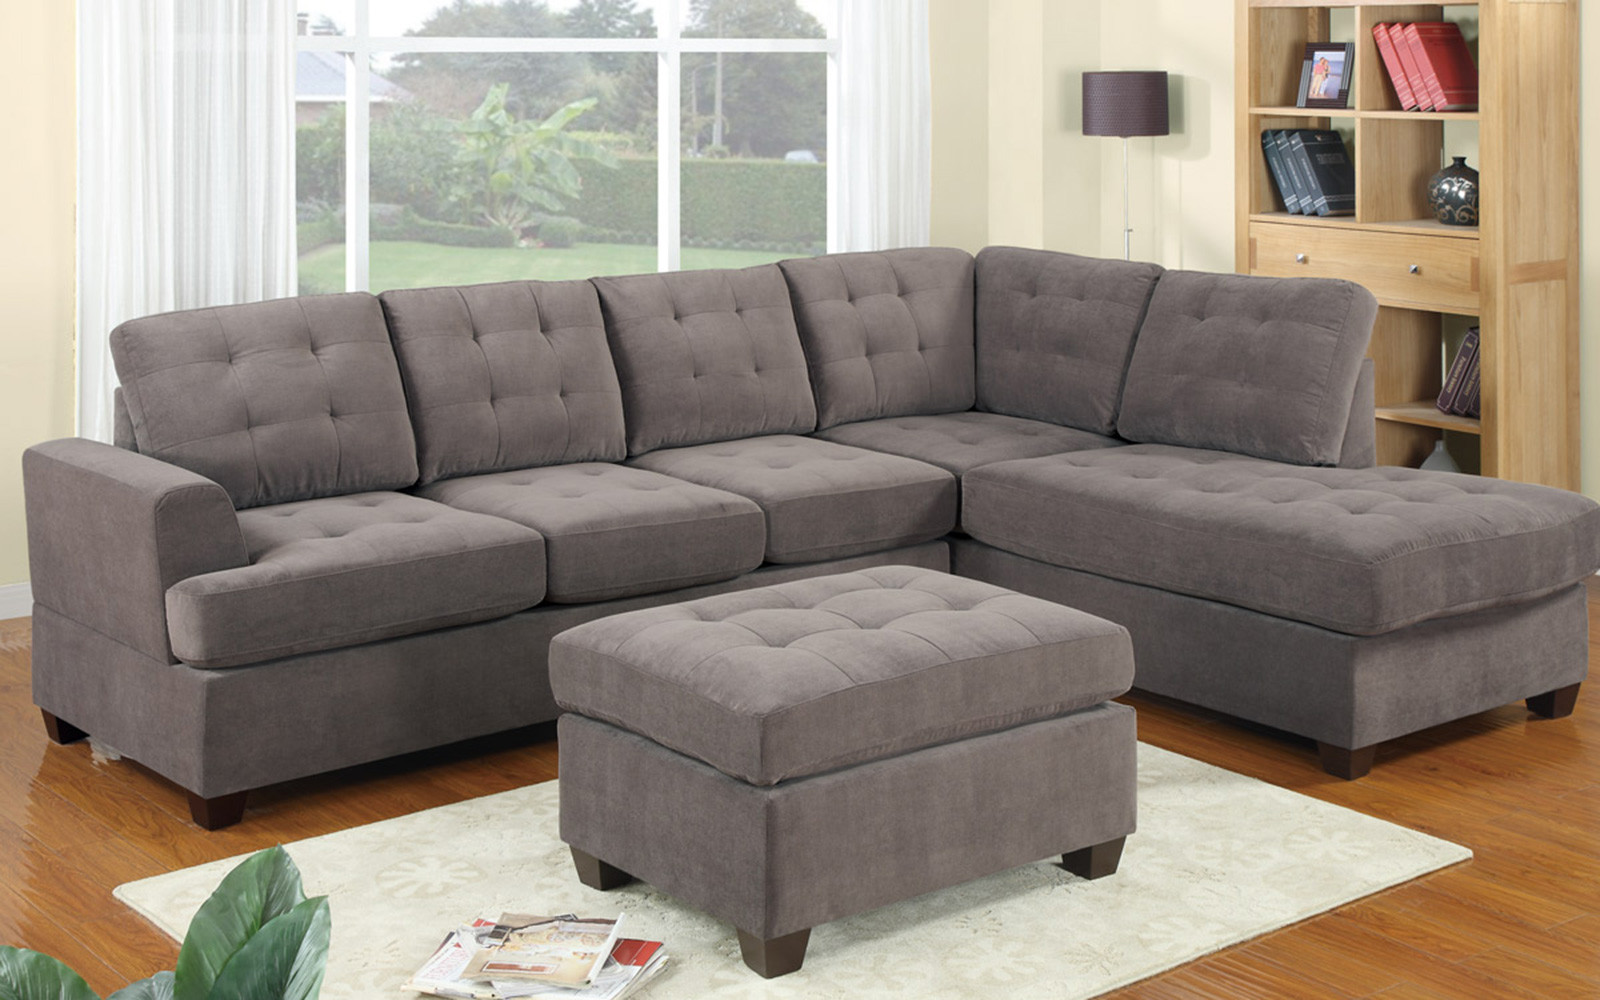 2 Piece Modern Reversible Grey Tufted Microfiber Sectional Sofa with  Ottoman - Walmart.com